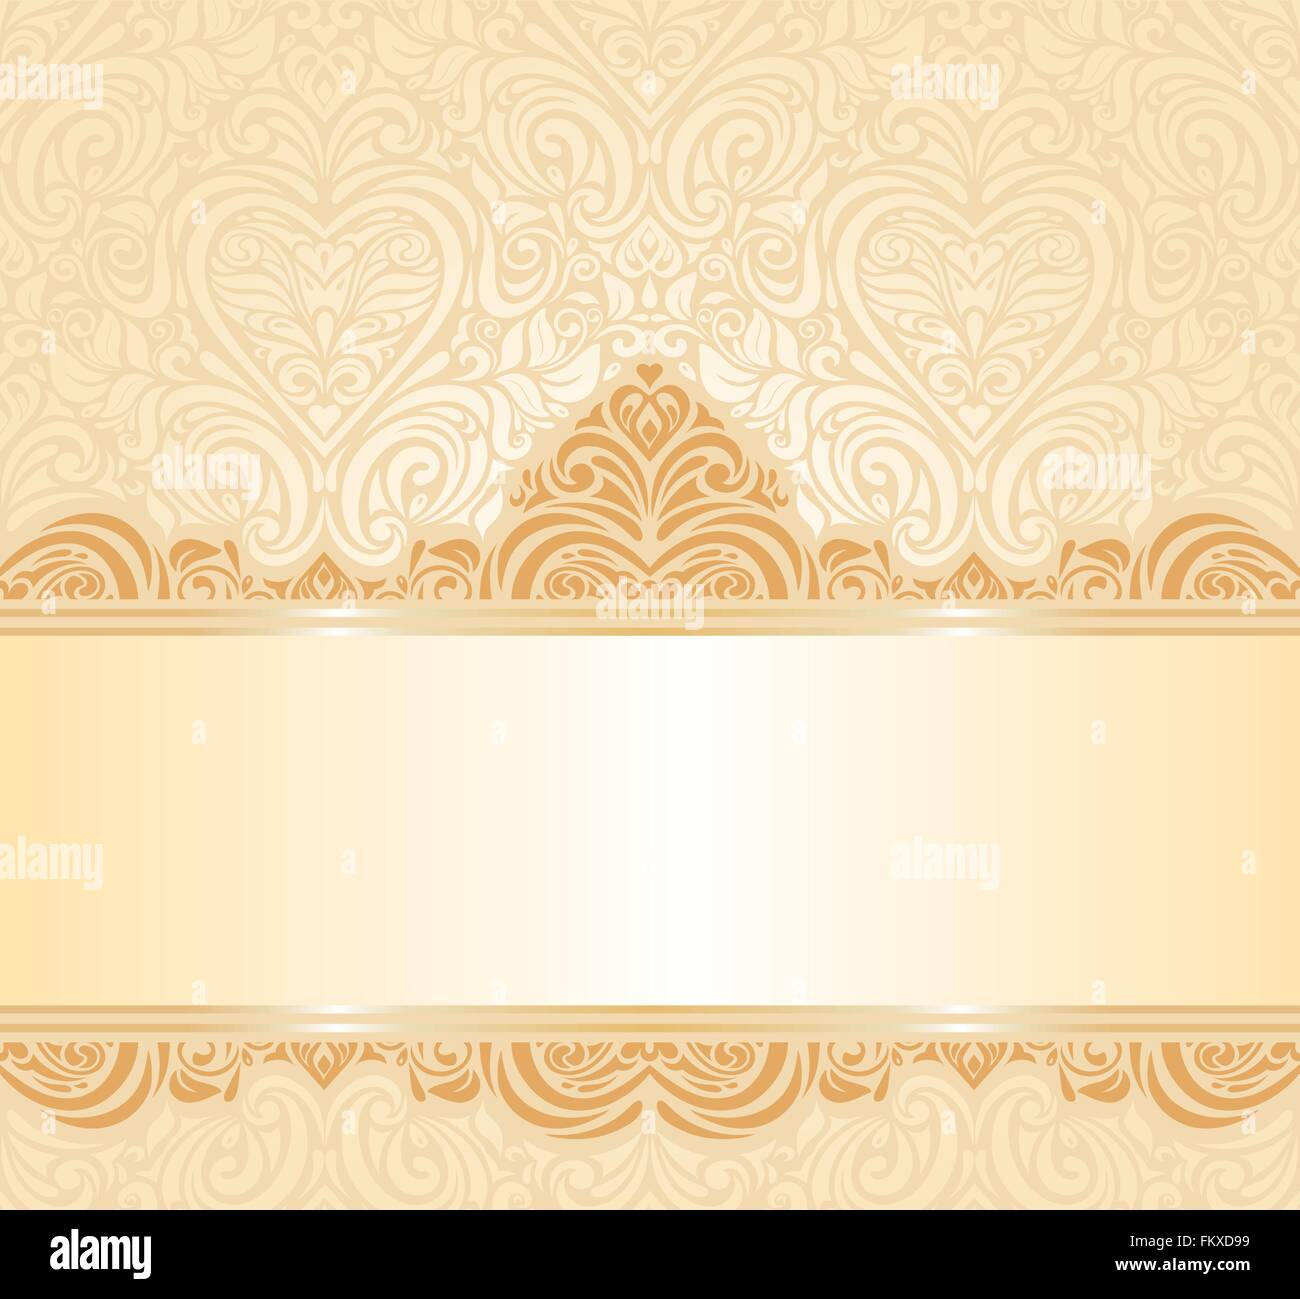 gentle peach wedding invitation floral  background pattern - Stock Vector